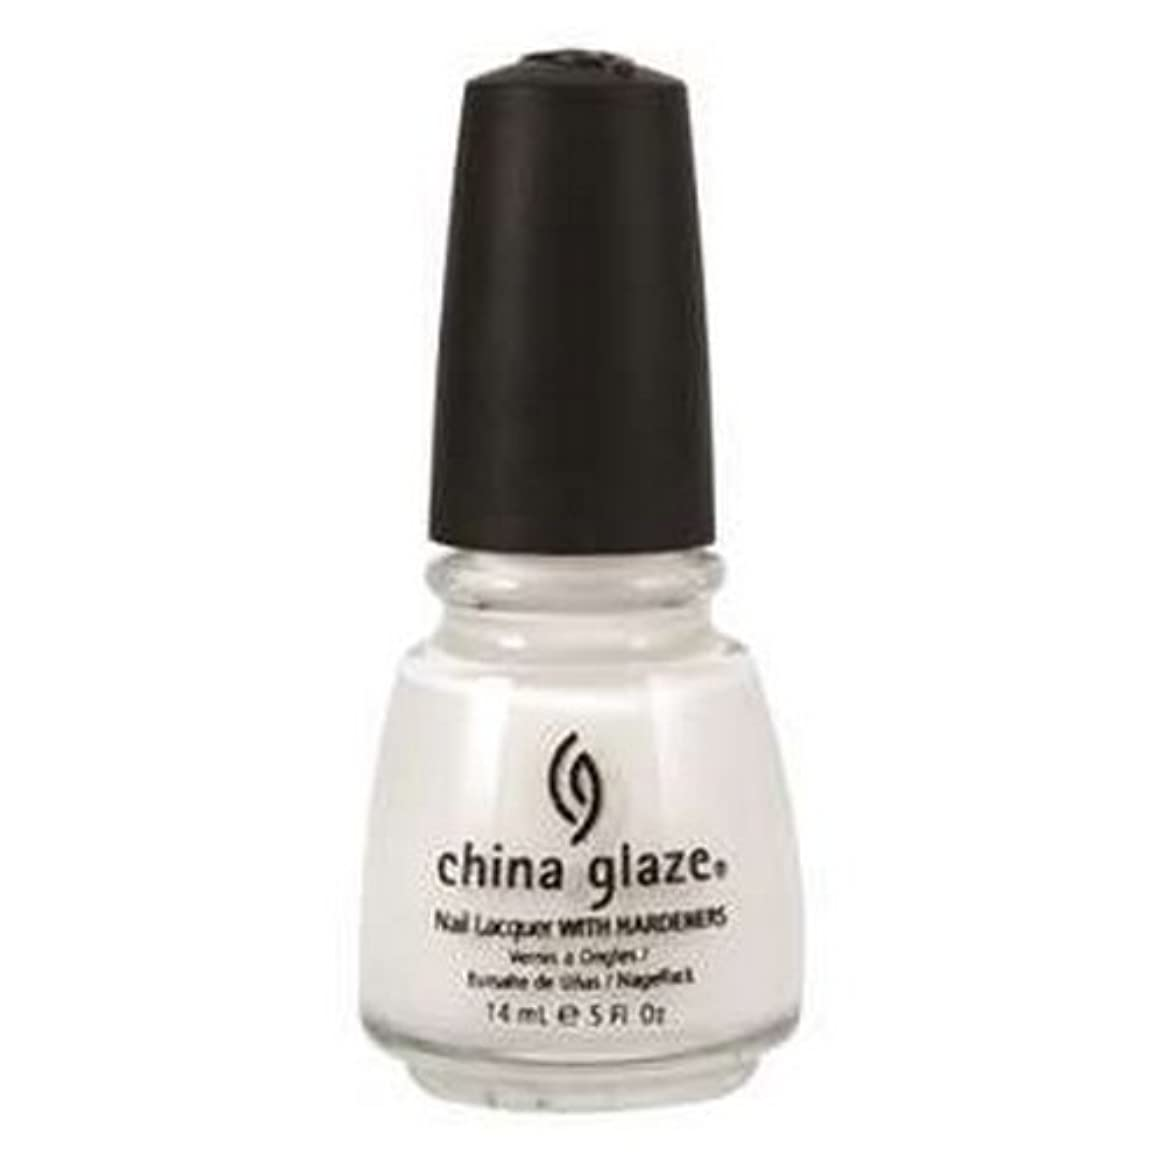 スーツケース抵抗する傾向(6 Pack) CHINA GLAZE Nail Lacquer with Nail Hardner 2 - Snow (並行輸入品)